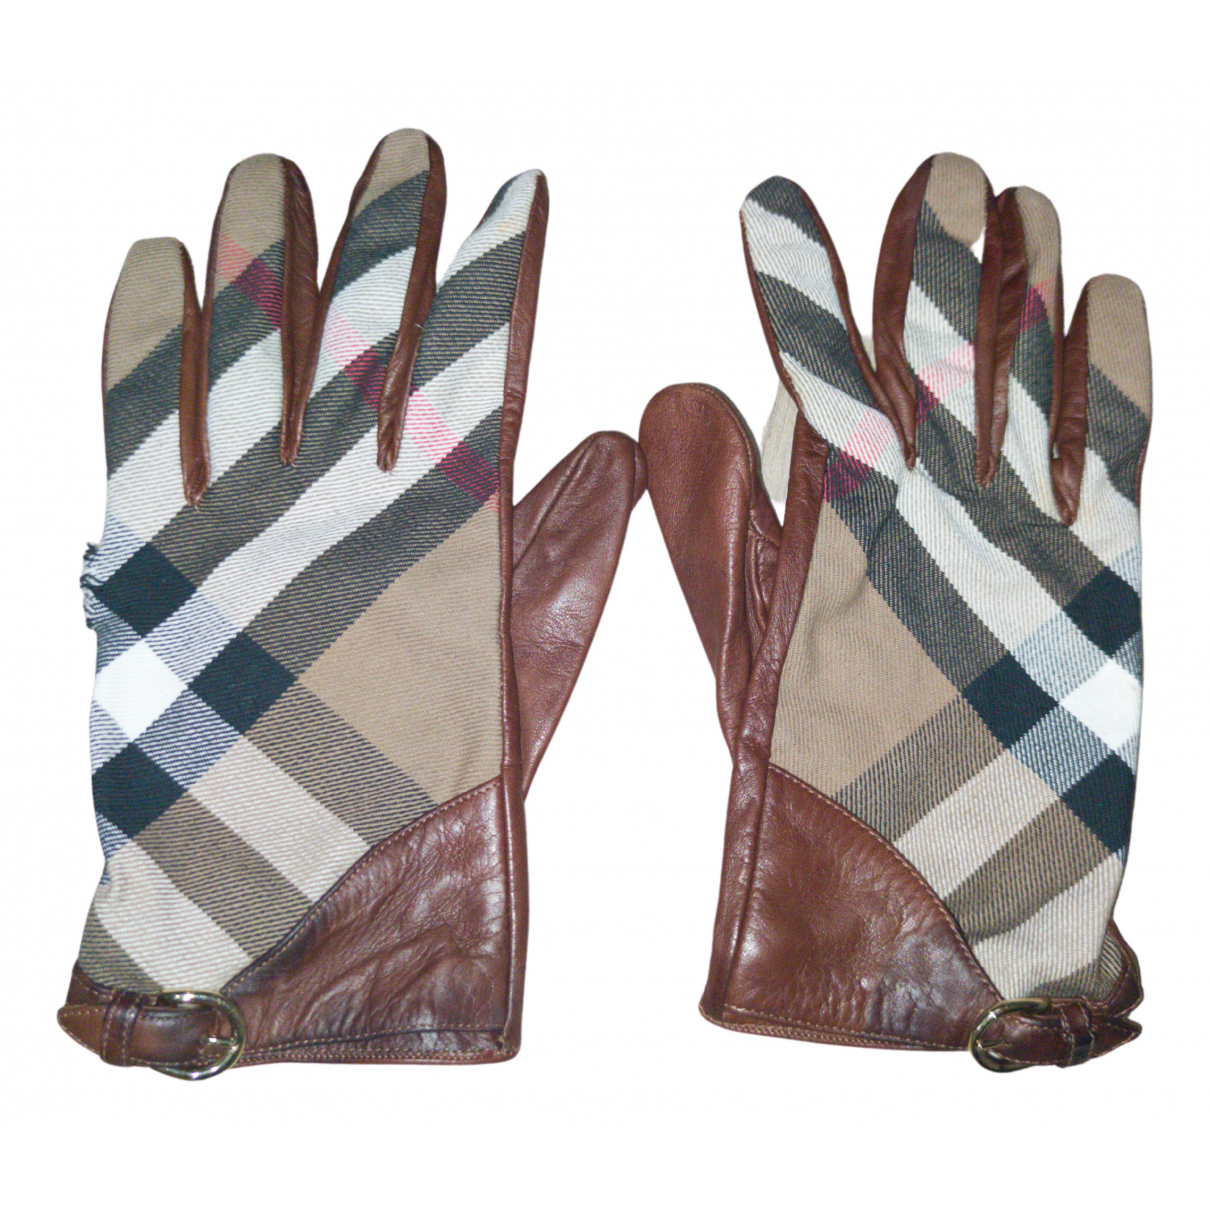 Burberry N Brown Leather Gloves for Women 8 Inches